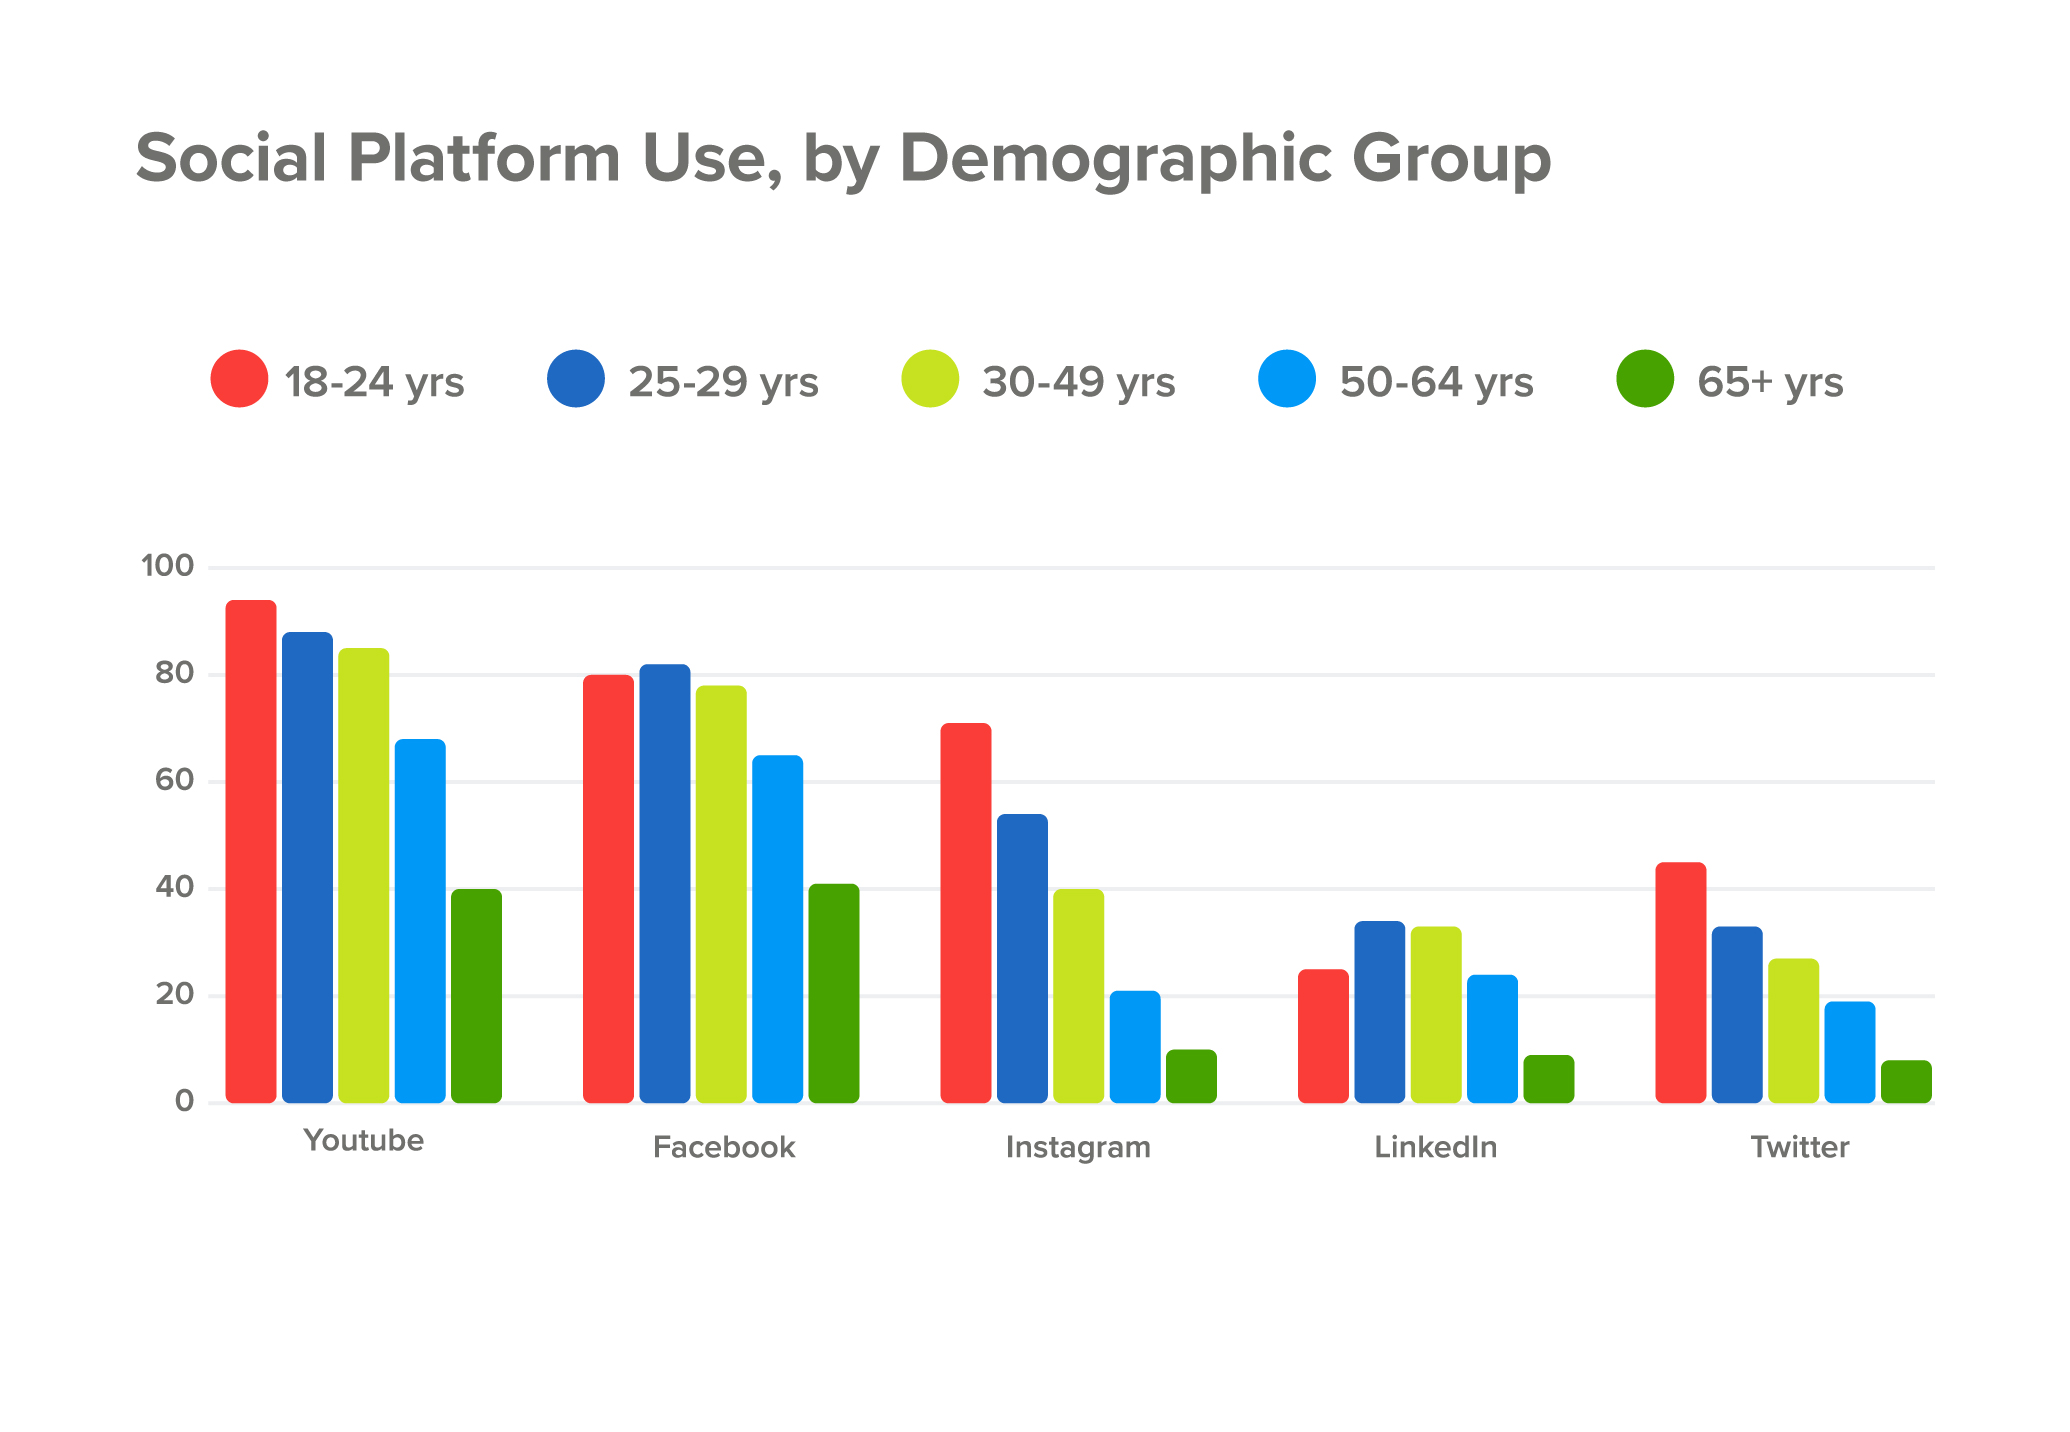 oSocial media usage, by demographic group